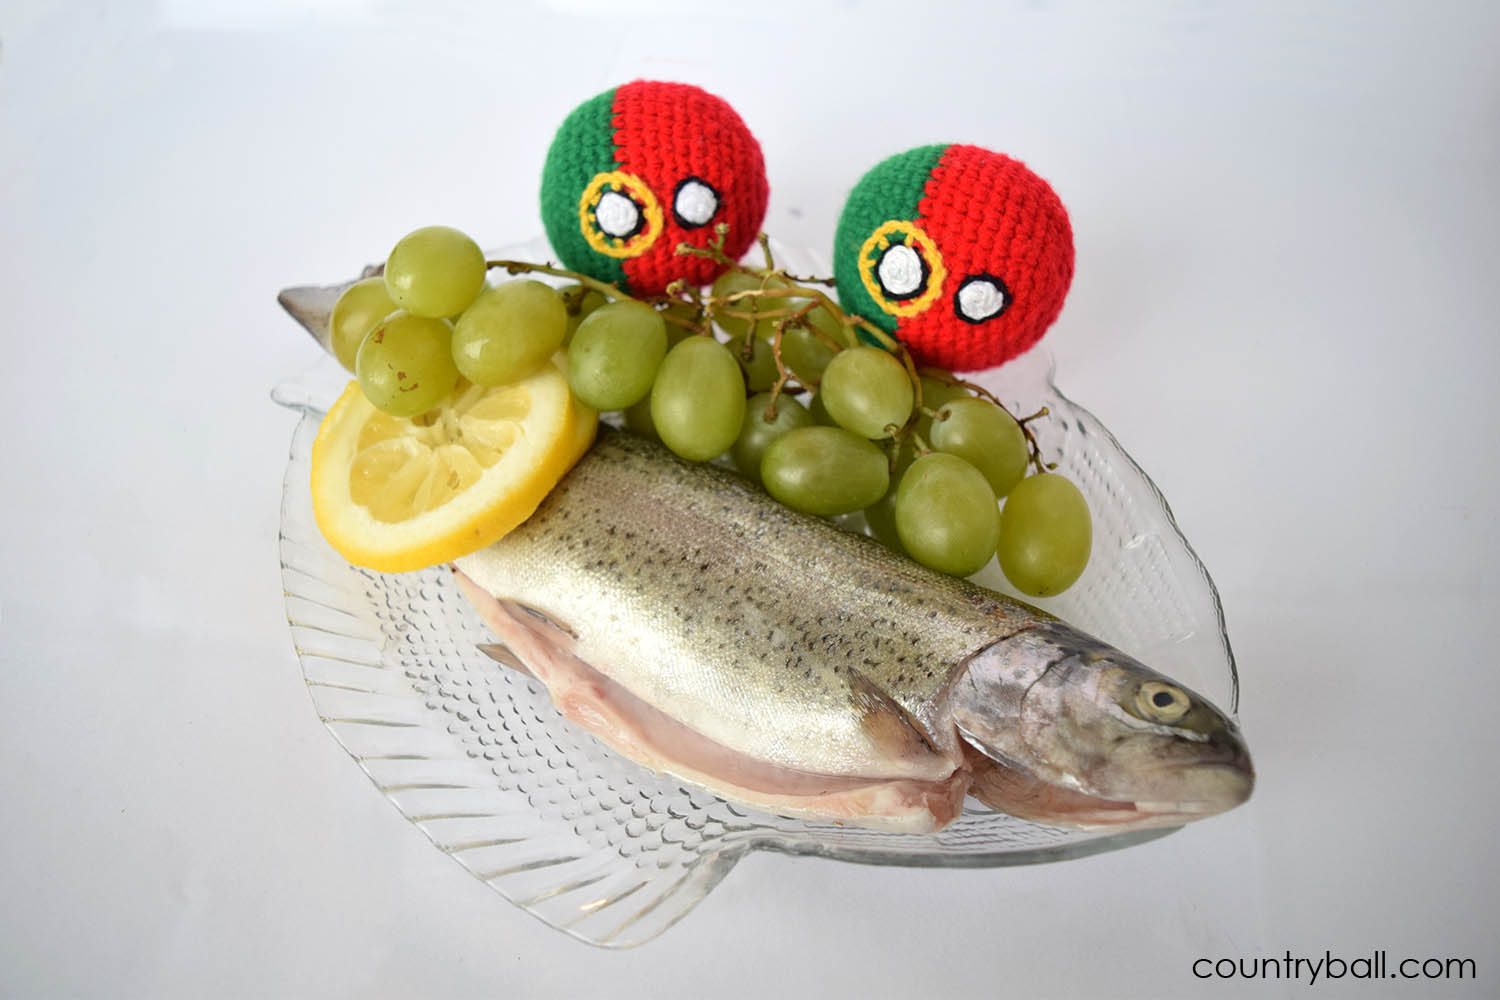 Portugalball can't Wait to Eat Fish